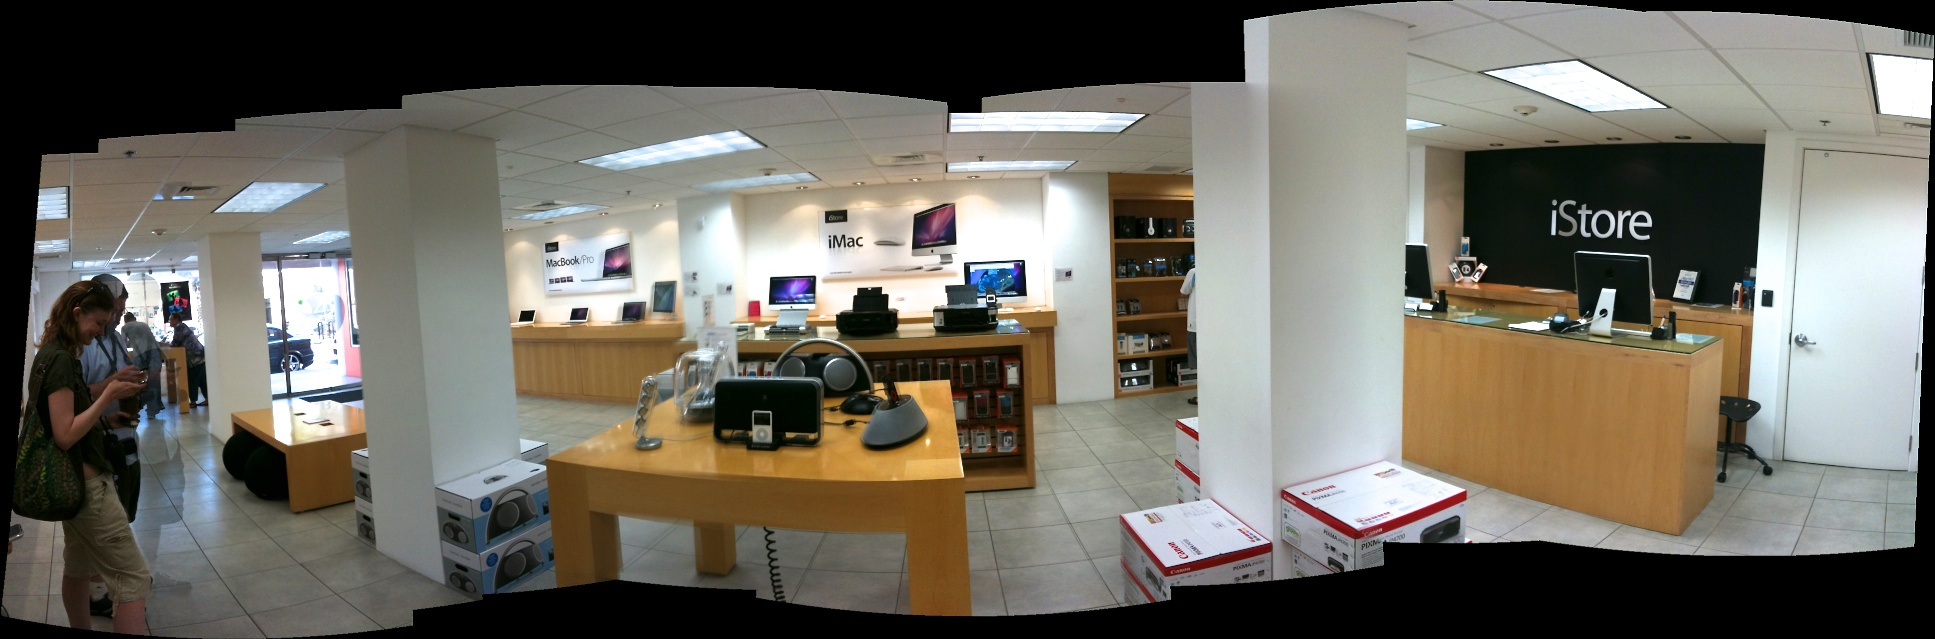 The iStore, in Hamilton Bermuda. Not an Apple Store, but an incredible simulation.